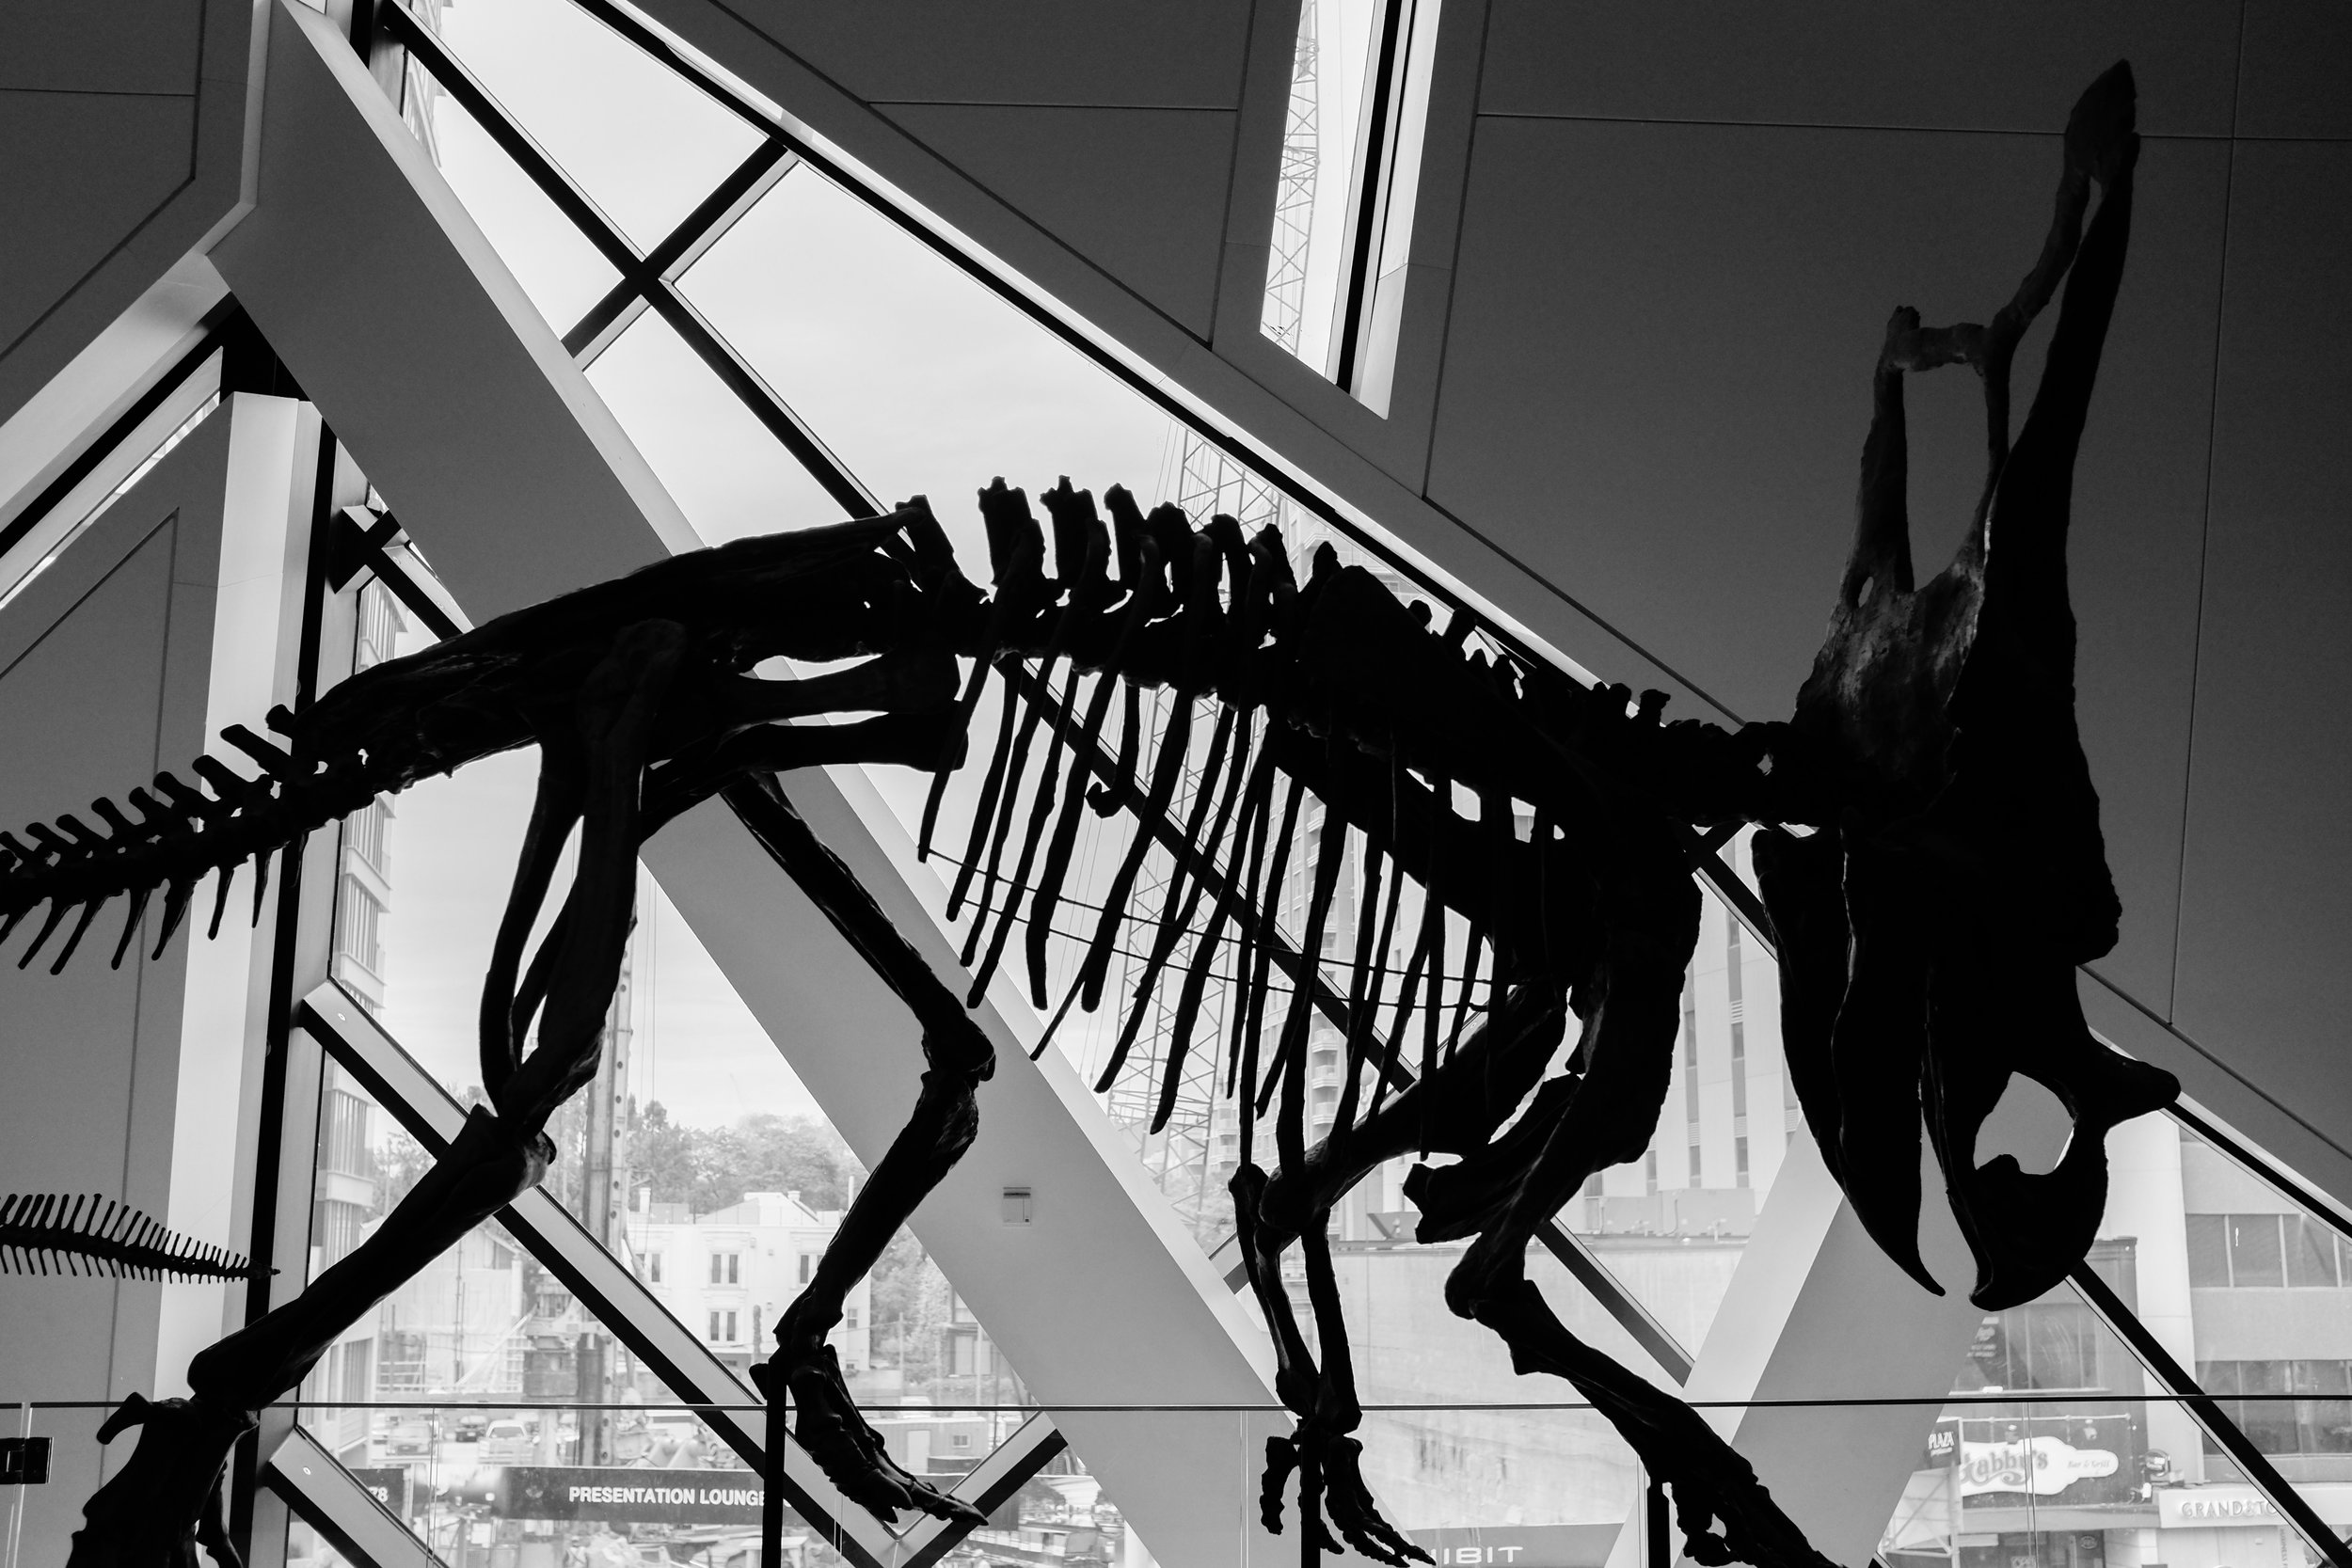 The Royal Ontario Museum located in Toronto, Canada, has a great mixture of exhibits located in a wonderfully designed building. In this photo, I used the straight lines of the windows to contrast with the curved lines of the dinosaur. Choosing to present this as monochrome further emphasizes the patterns. Fujifilm X100S, 1/1250 @f2.8, ISO 800.